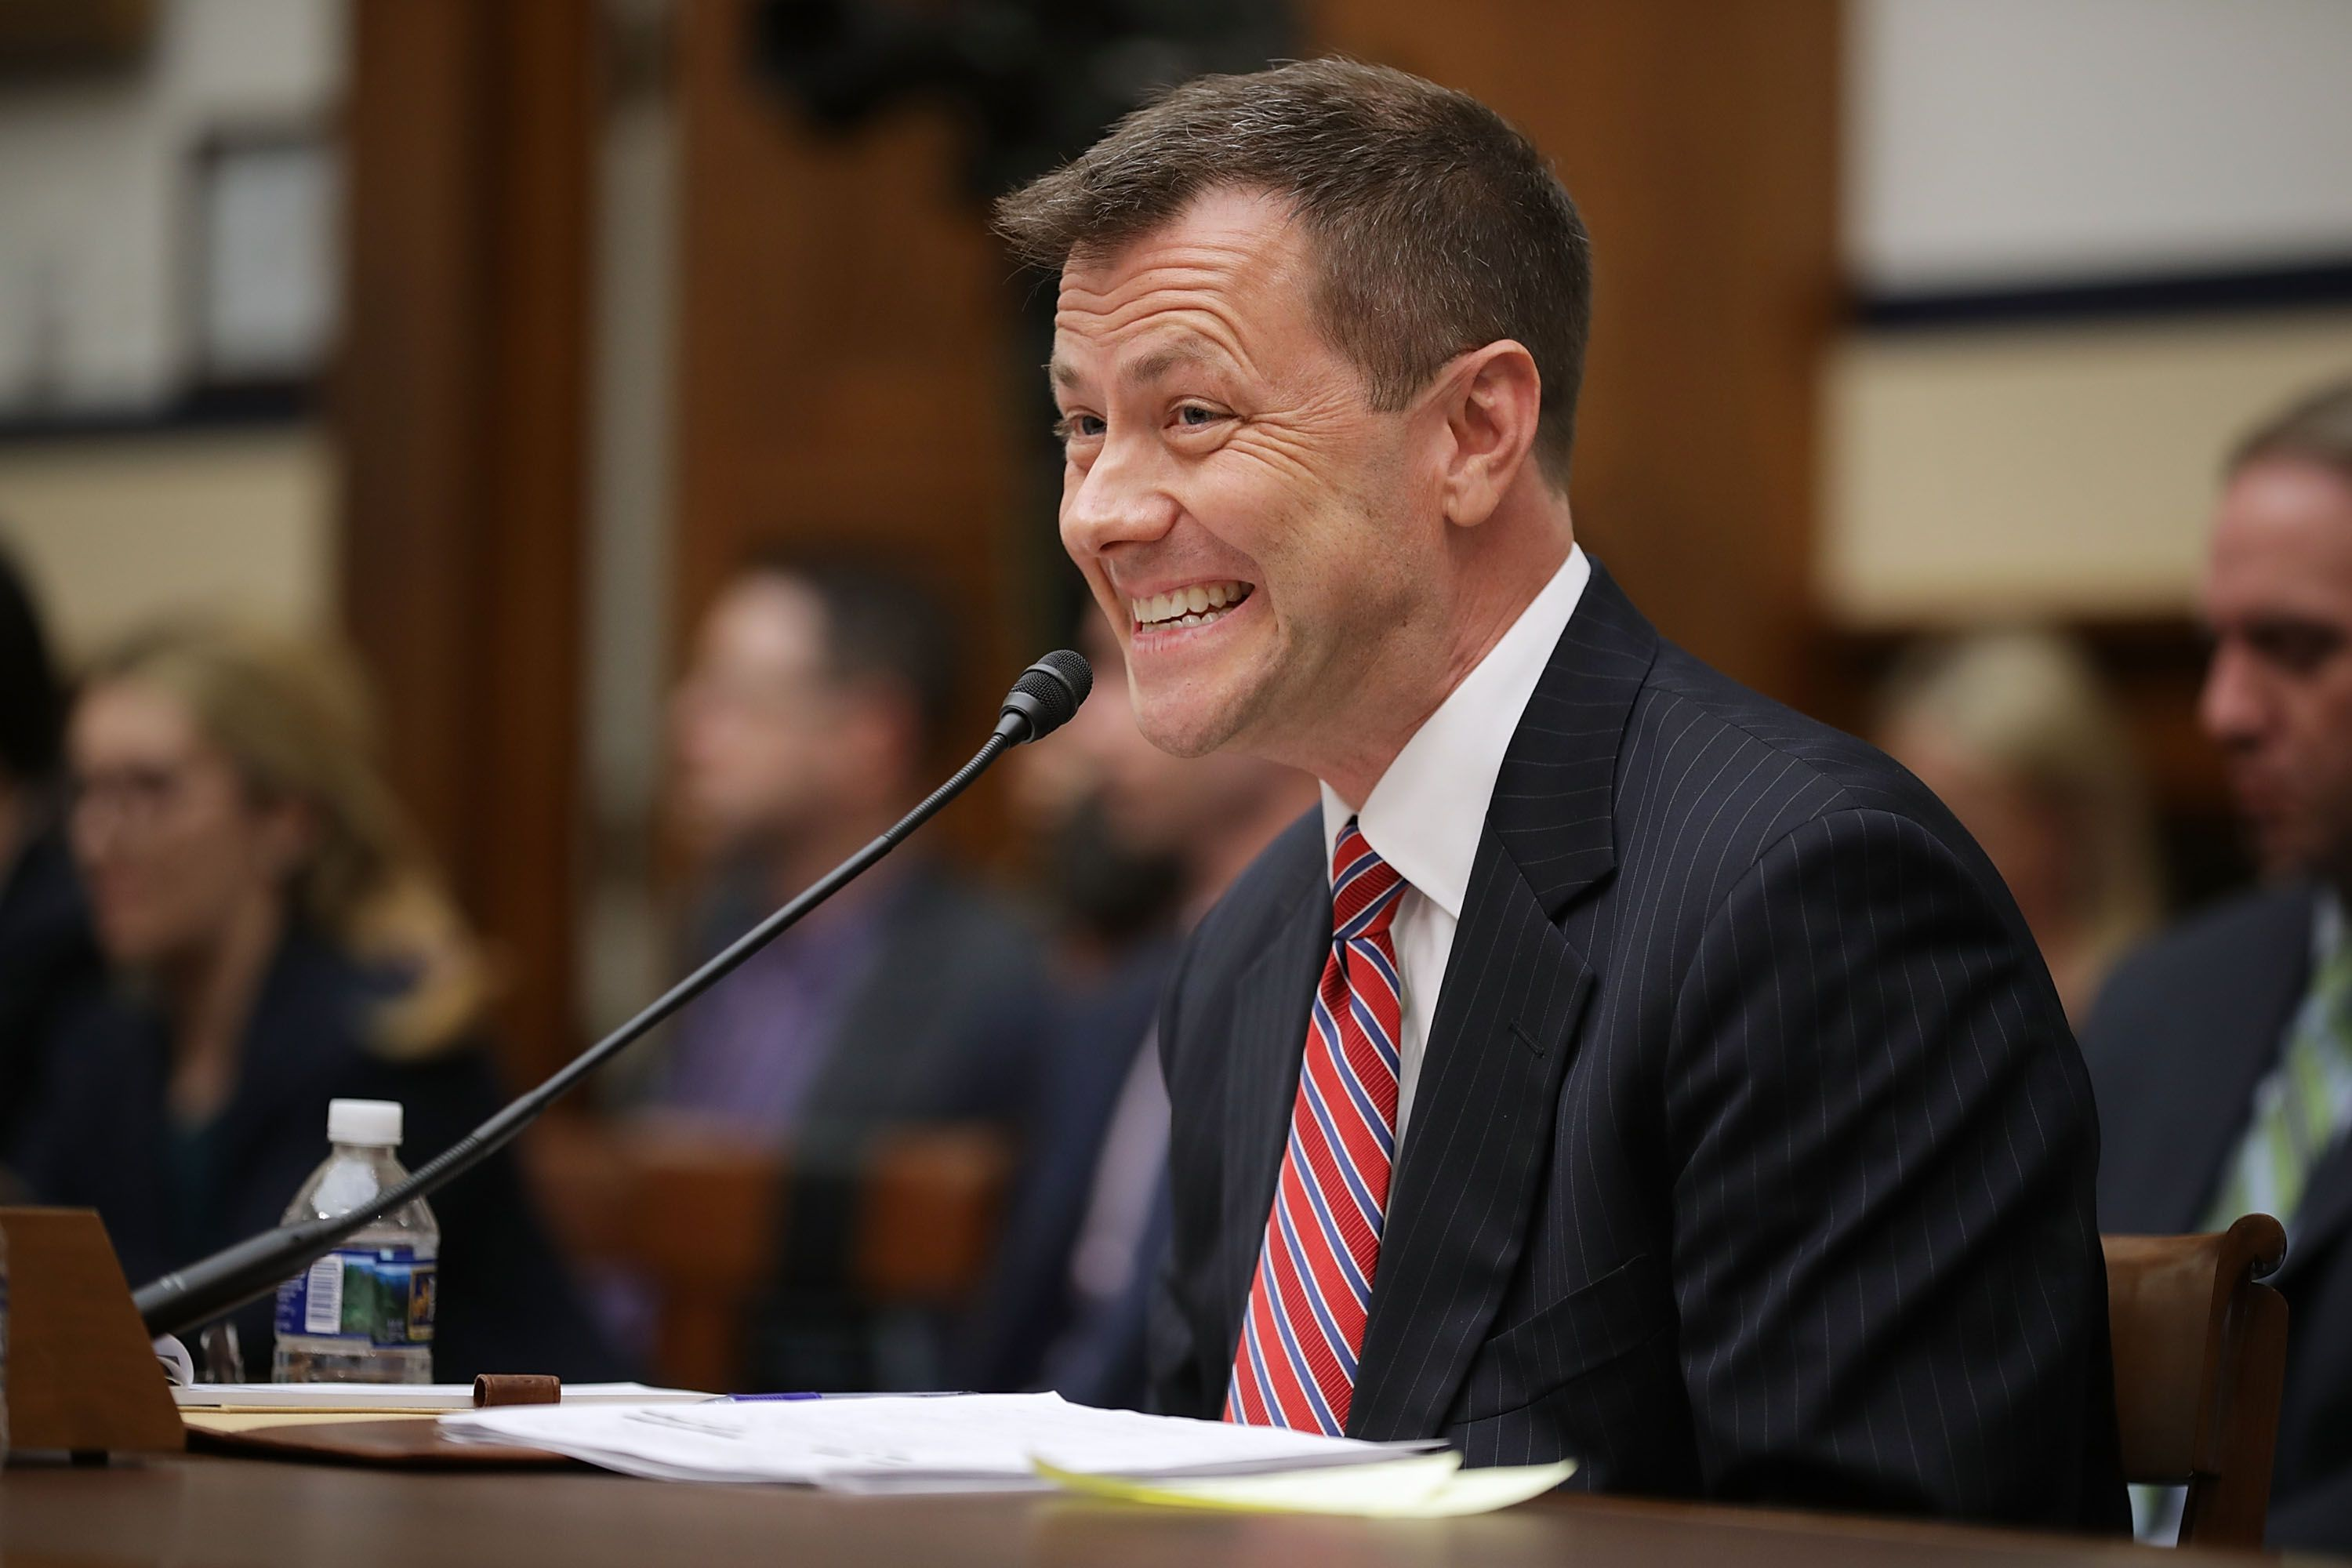 DOJ investigation reveals thousands of missing texts between Peter Strzok and Lisa Page - Axios